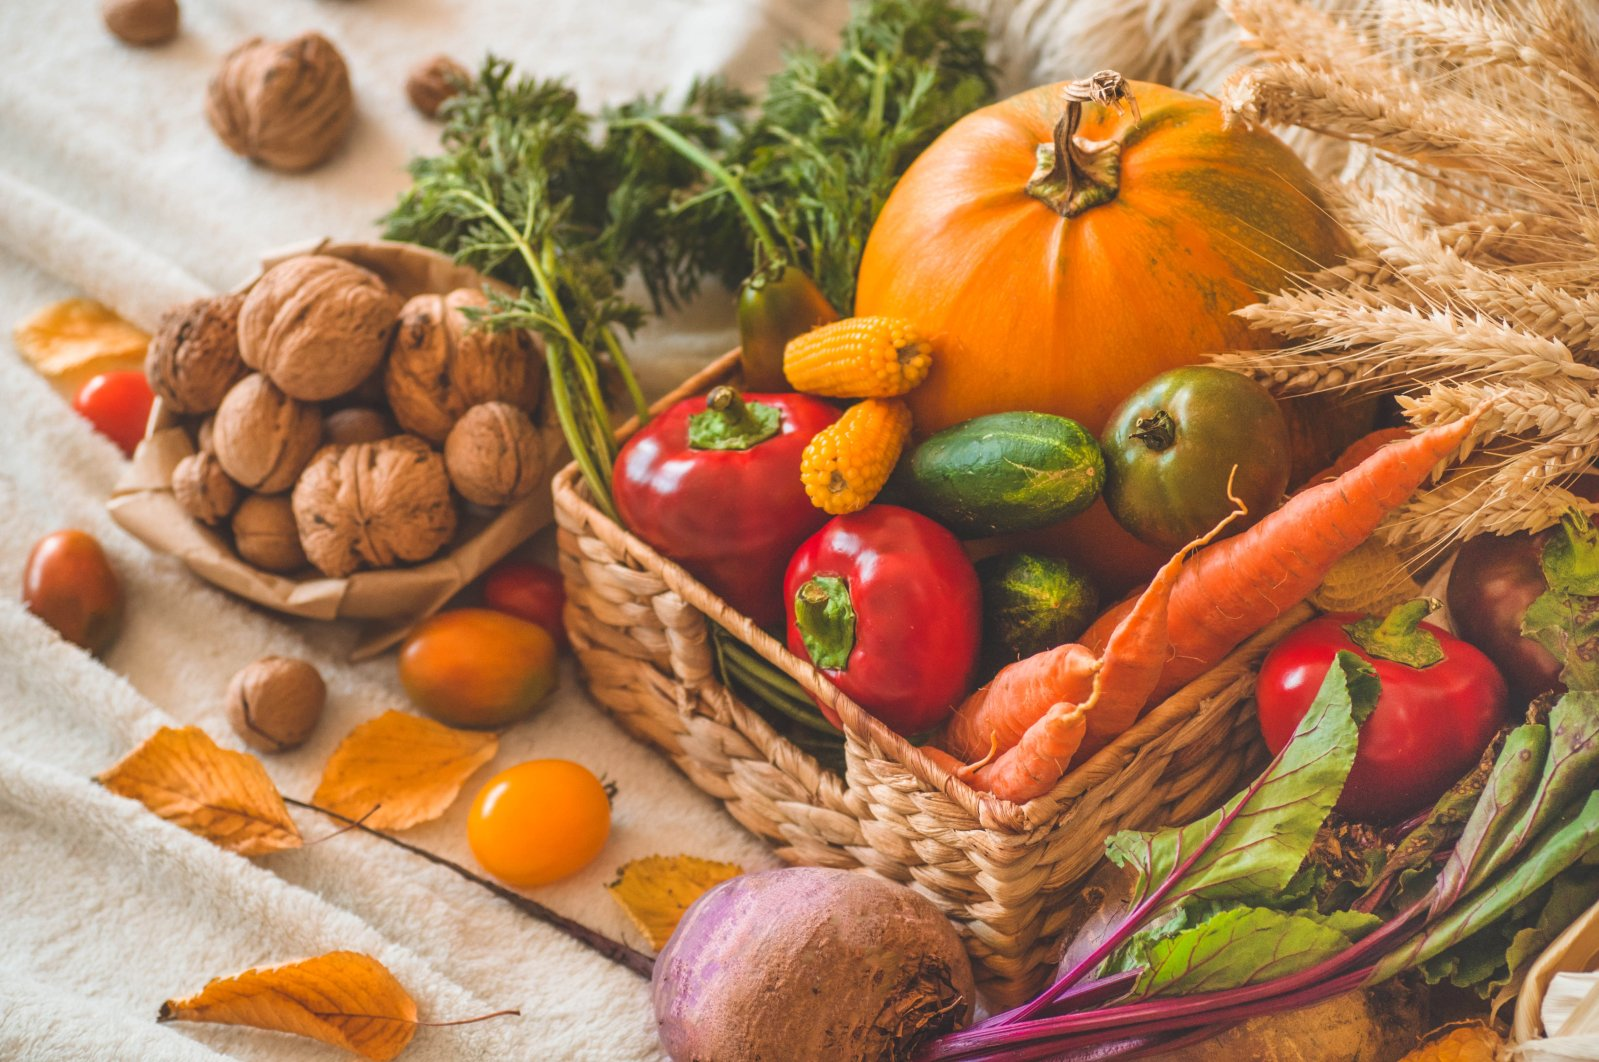 Fall has an array of delicious and colorful fruits and vegetables to offer. (Shutterstock Photo)